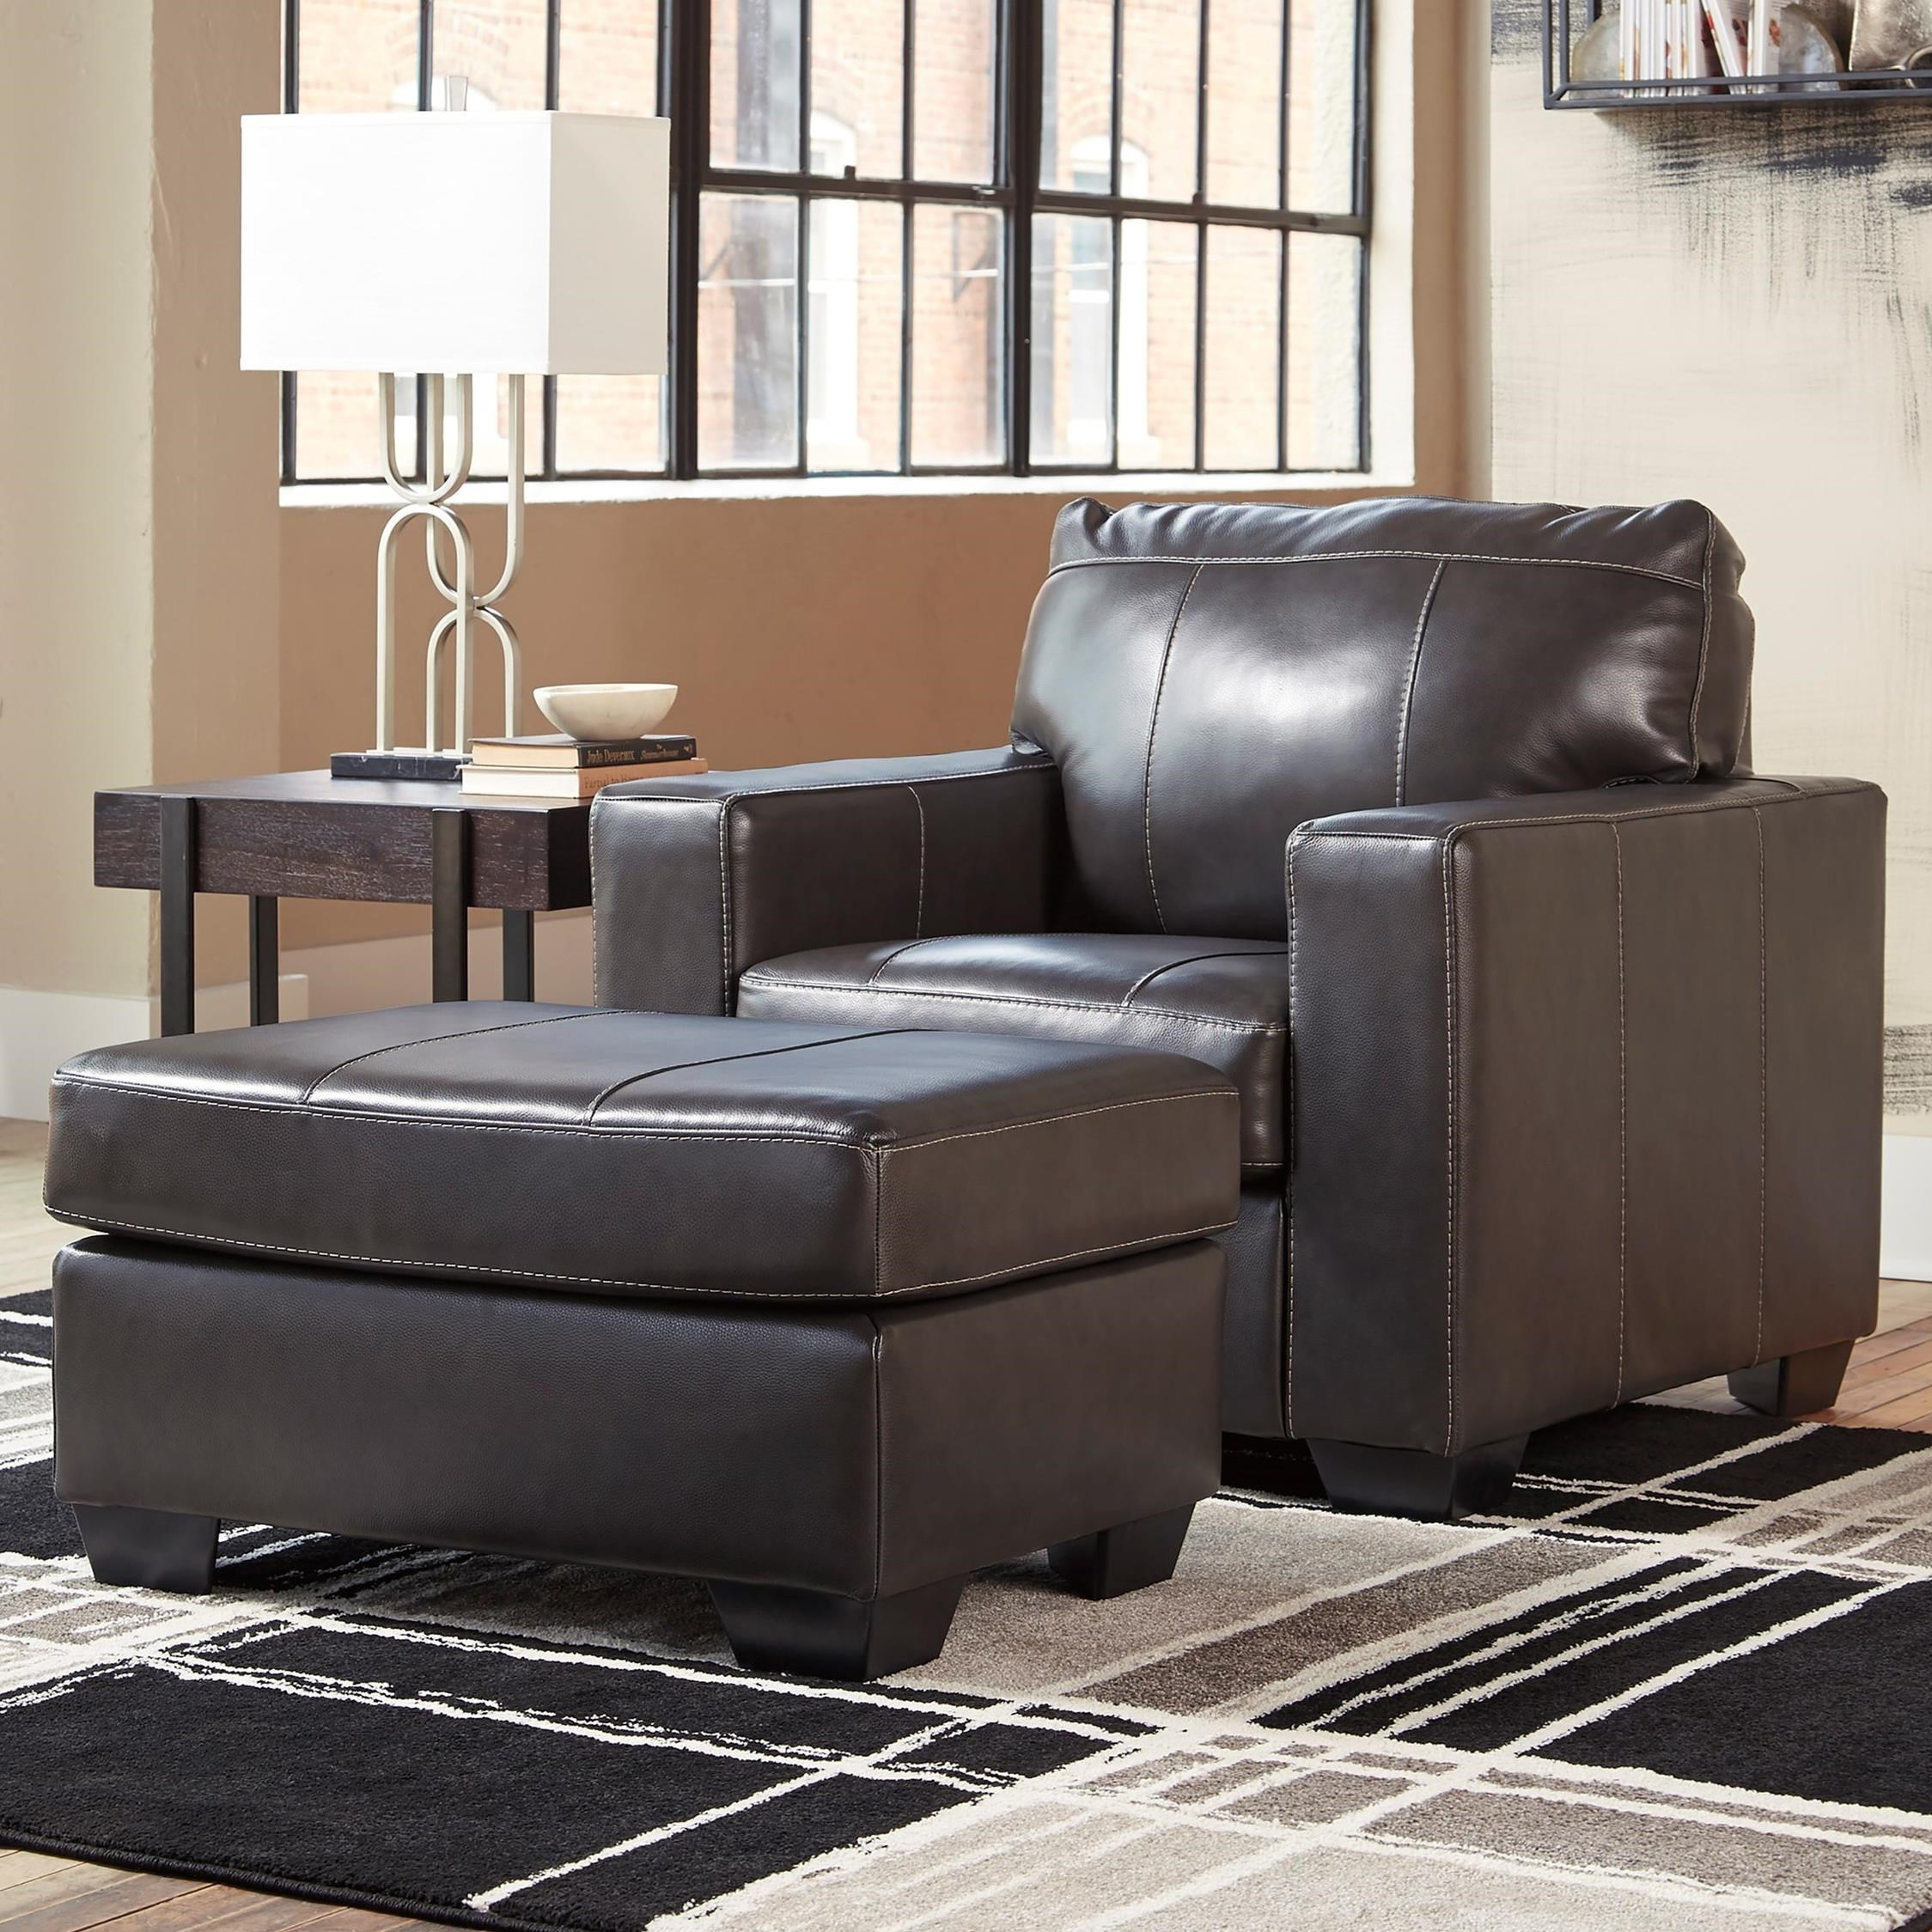 Morelos Chair & Ottoman by Ashley (Signature Design) at Johnny Janosik